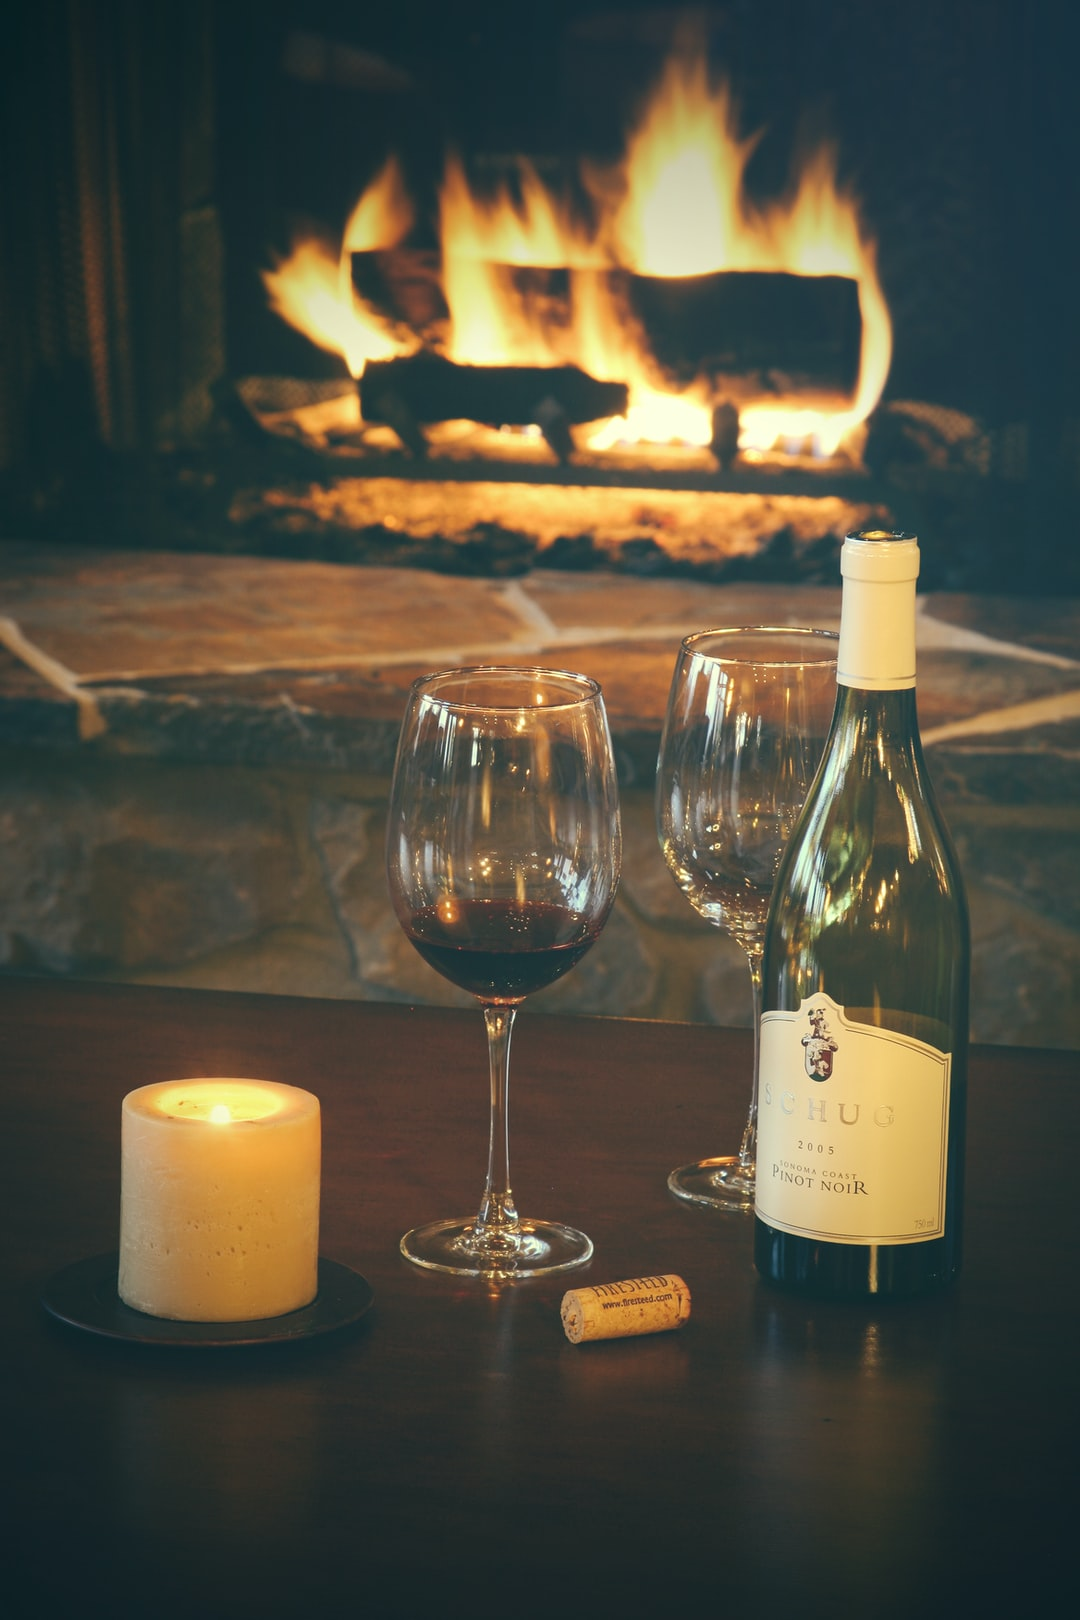 Wine in front of the fireplace